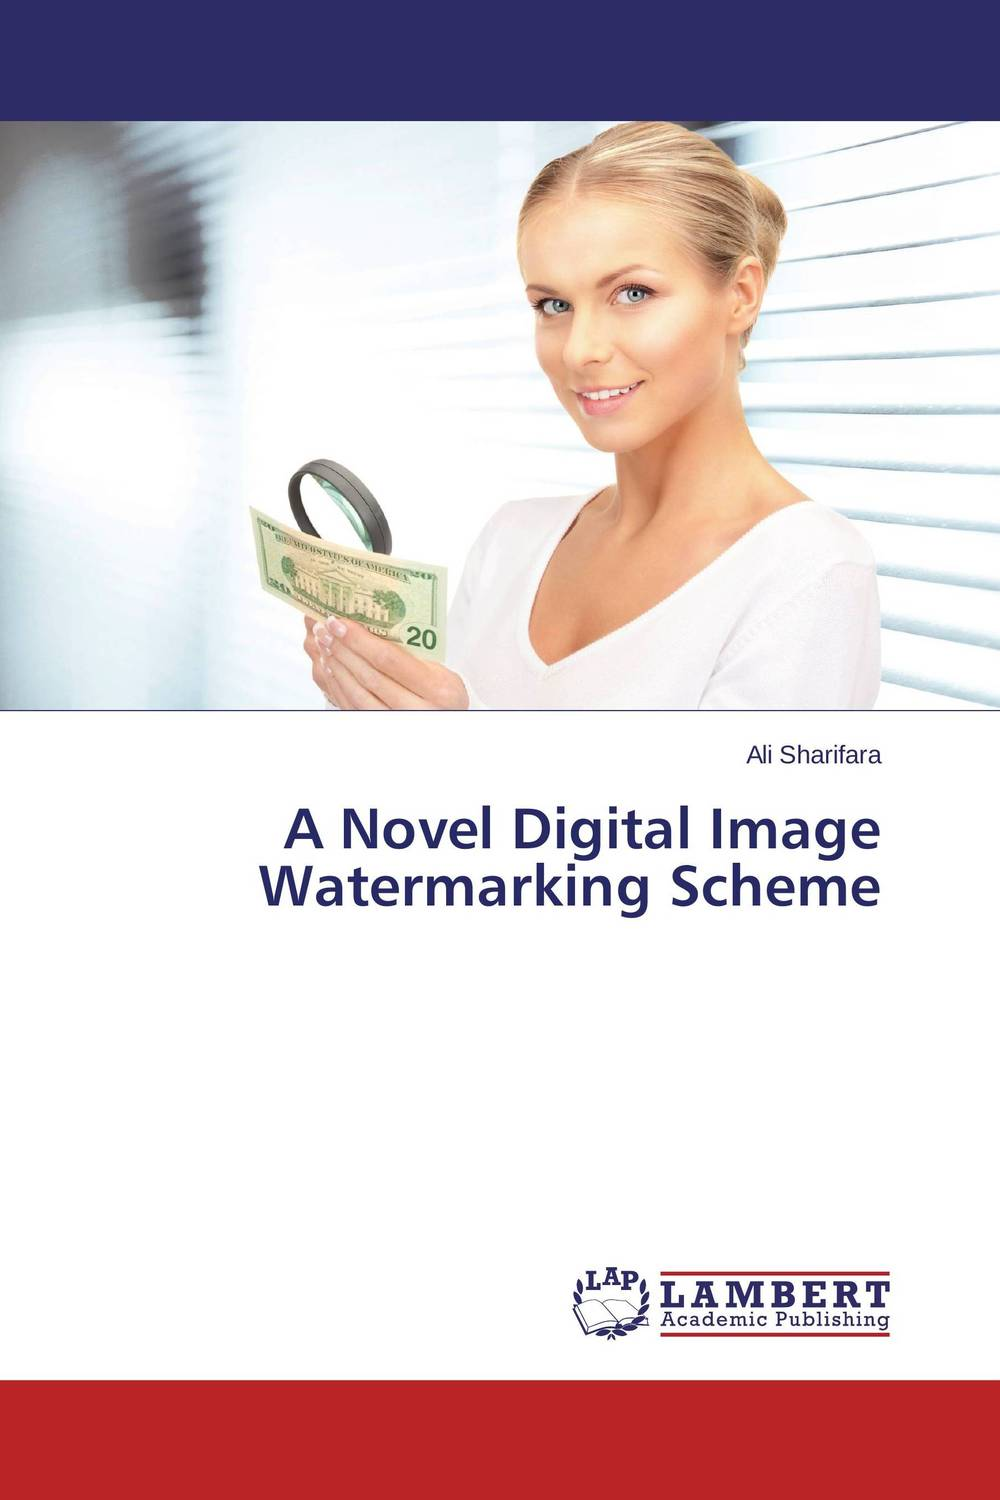 A Novel Digital Image Watermarking Scheme image tamper detection using reversible watermarking